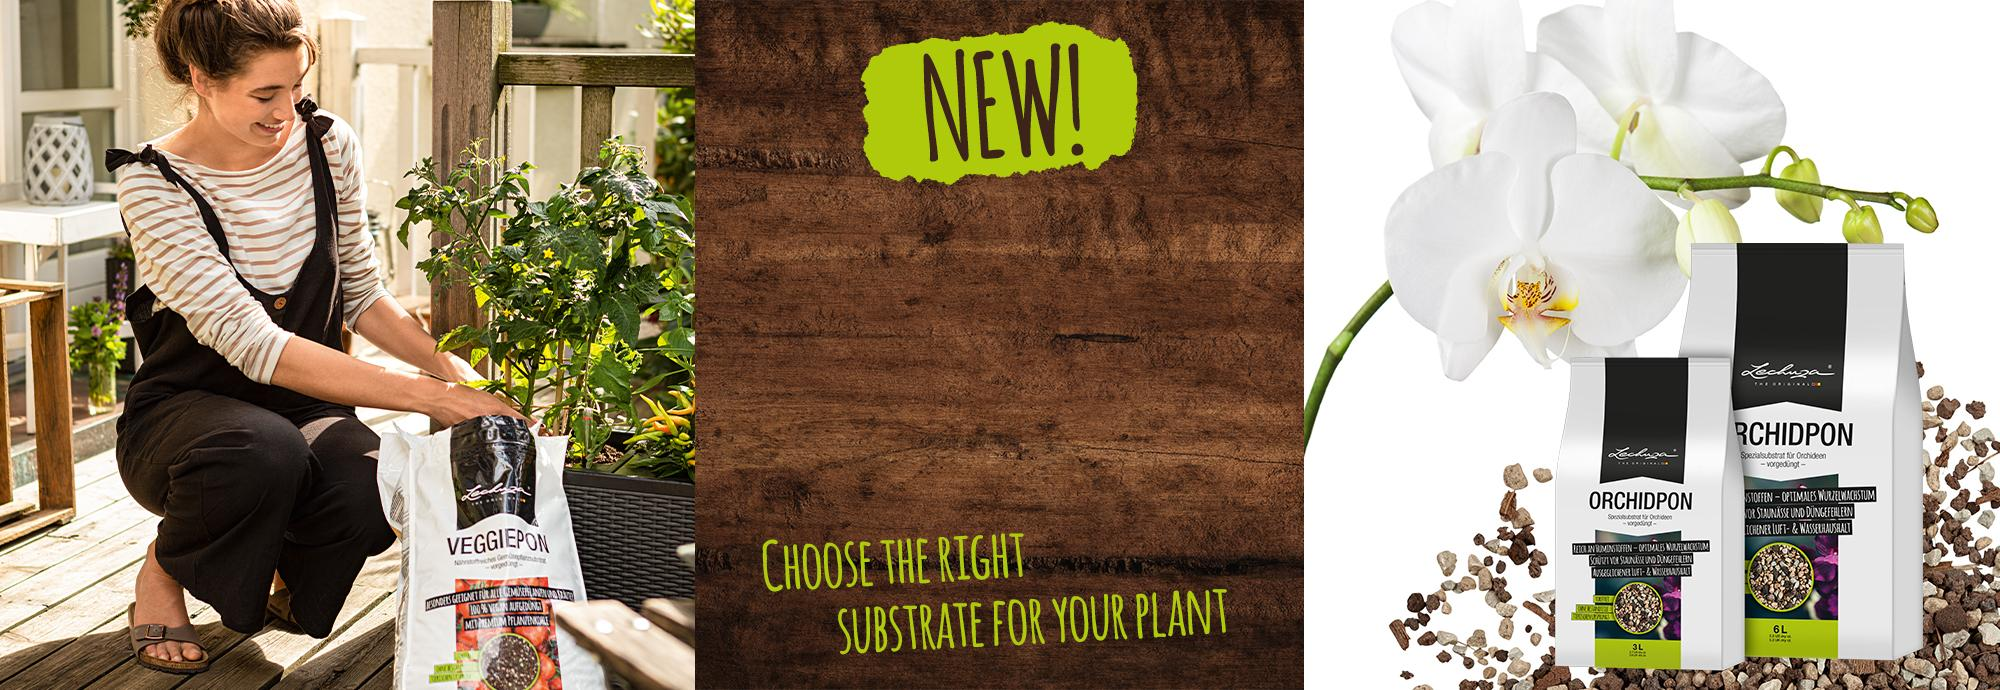 All-rounders! Discover the new planting substrates from LECHUZA